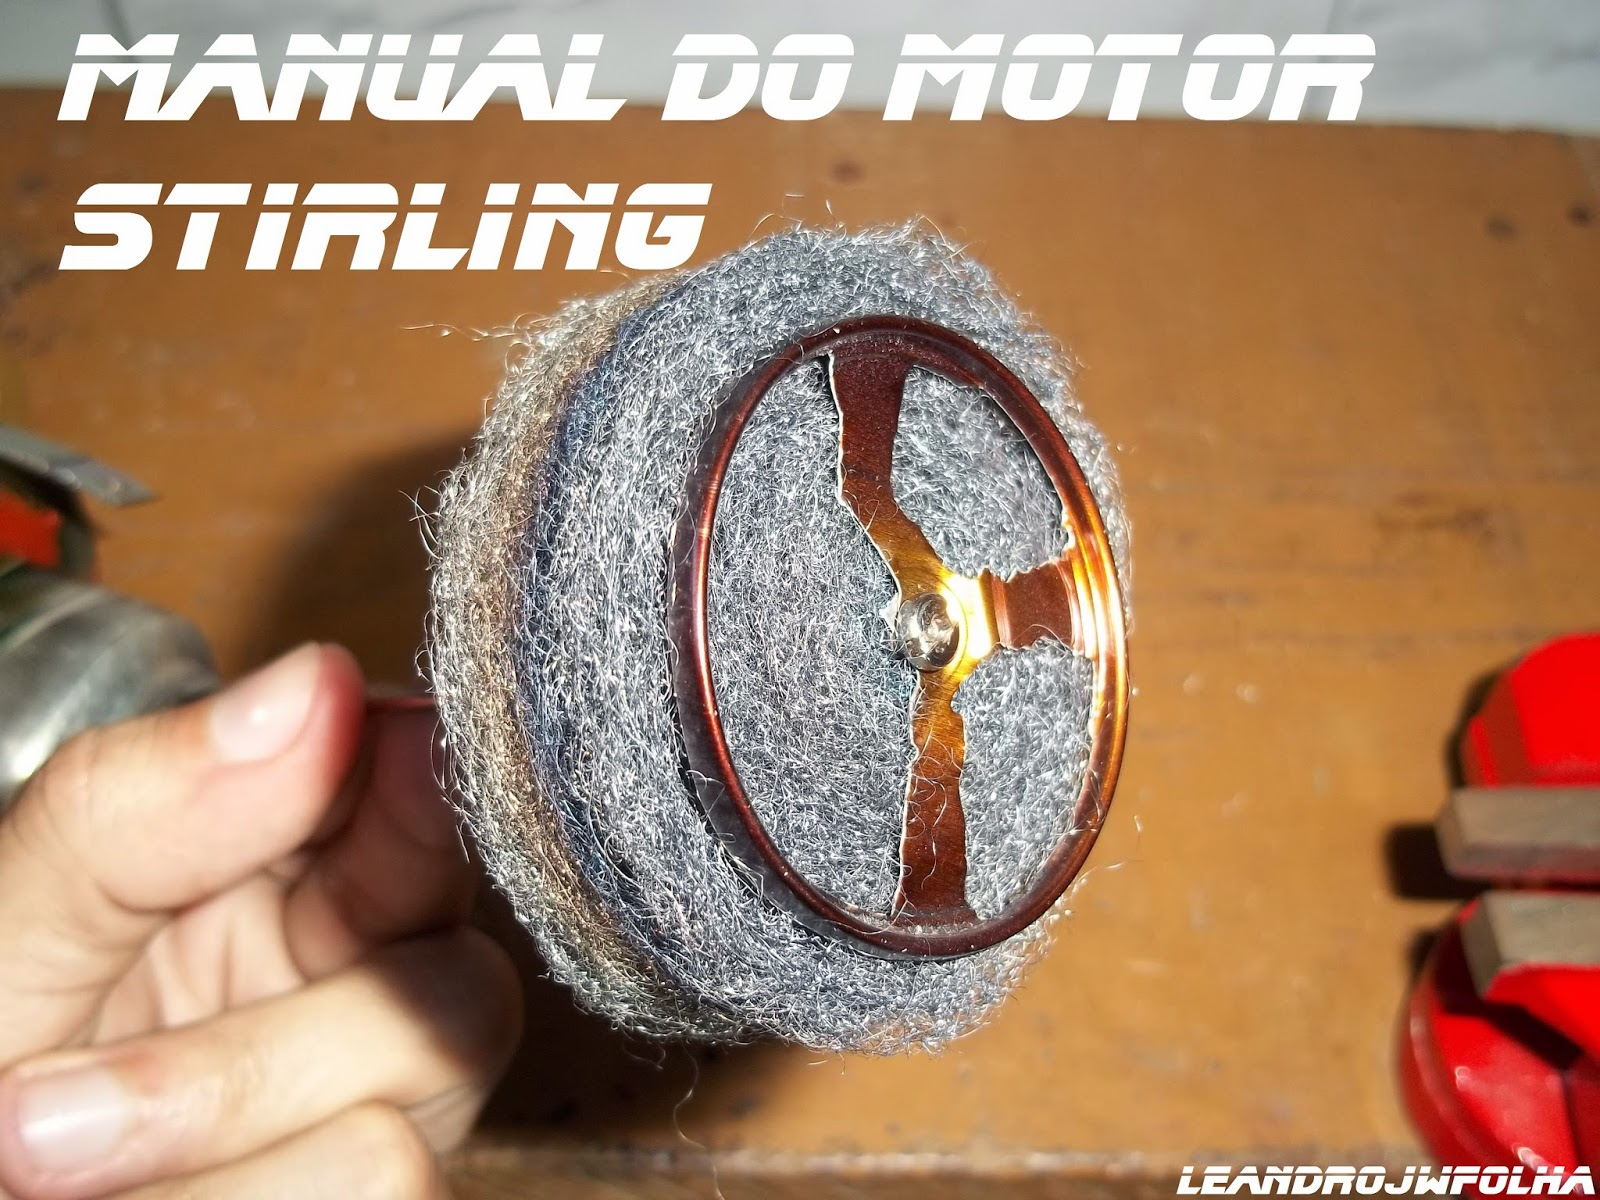 Displacer piston steel wool of a Stirling engine, Manual do motor Stirling